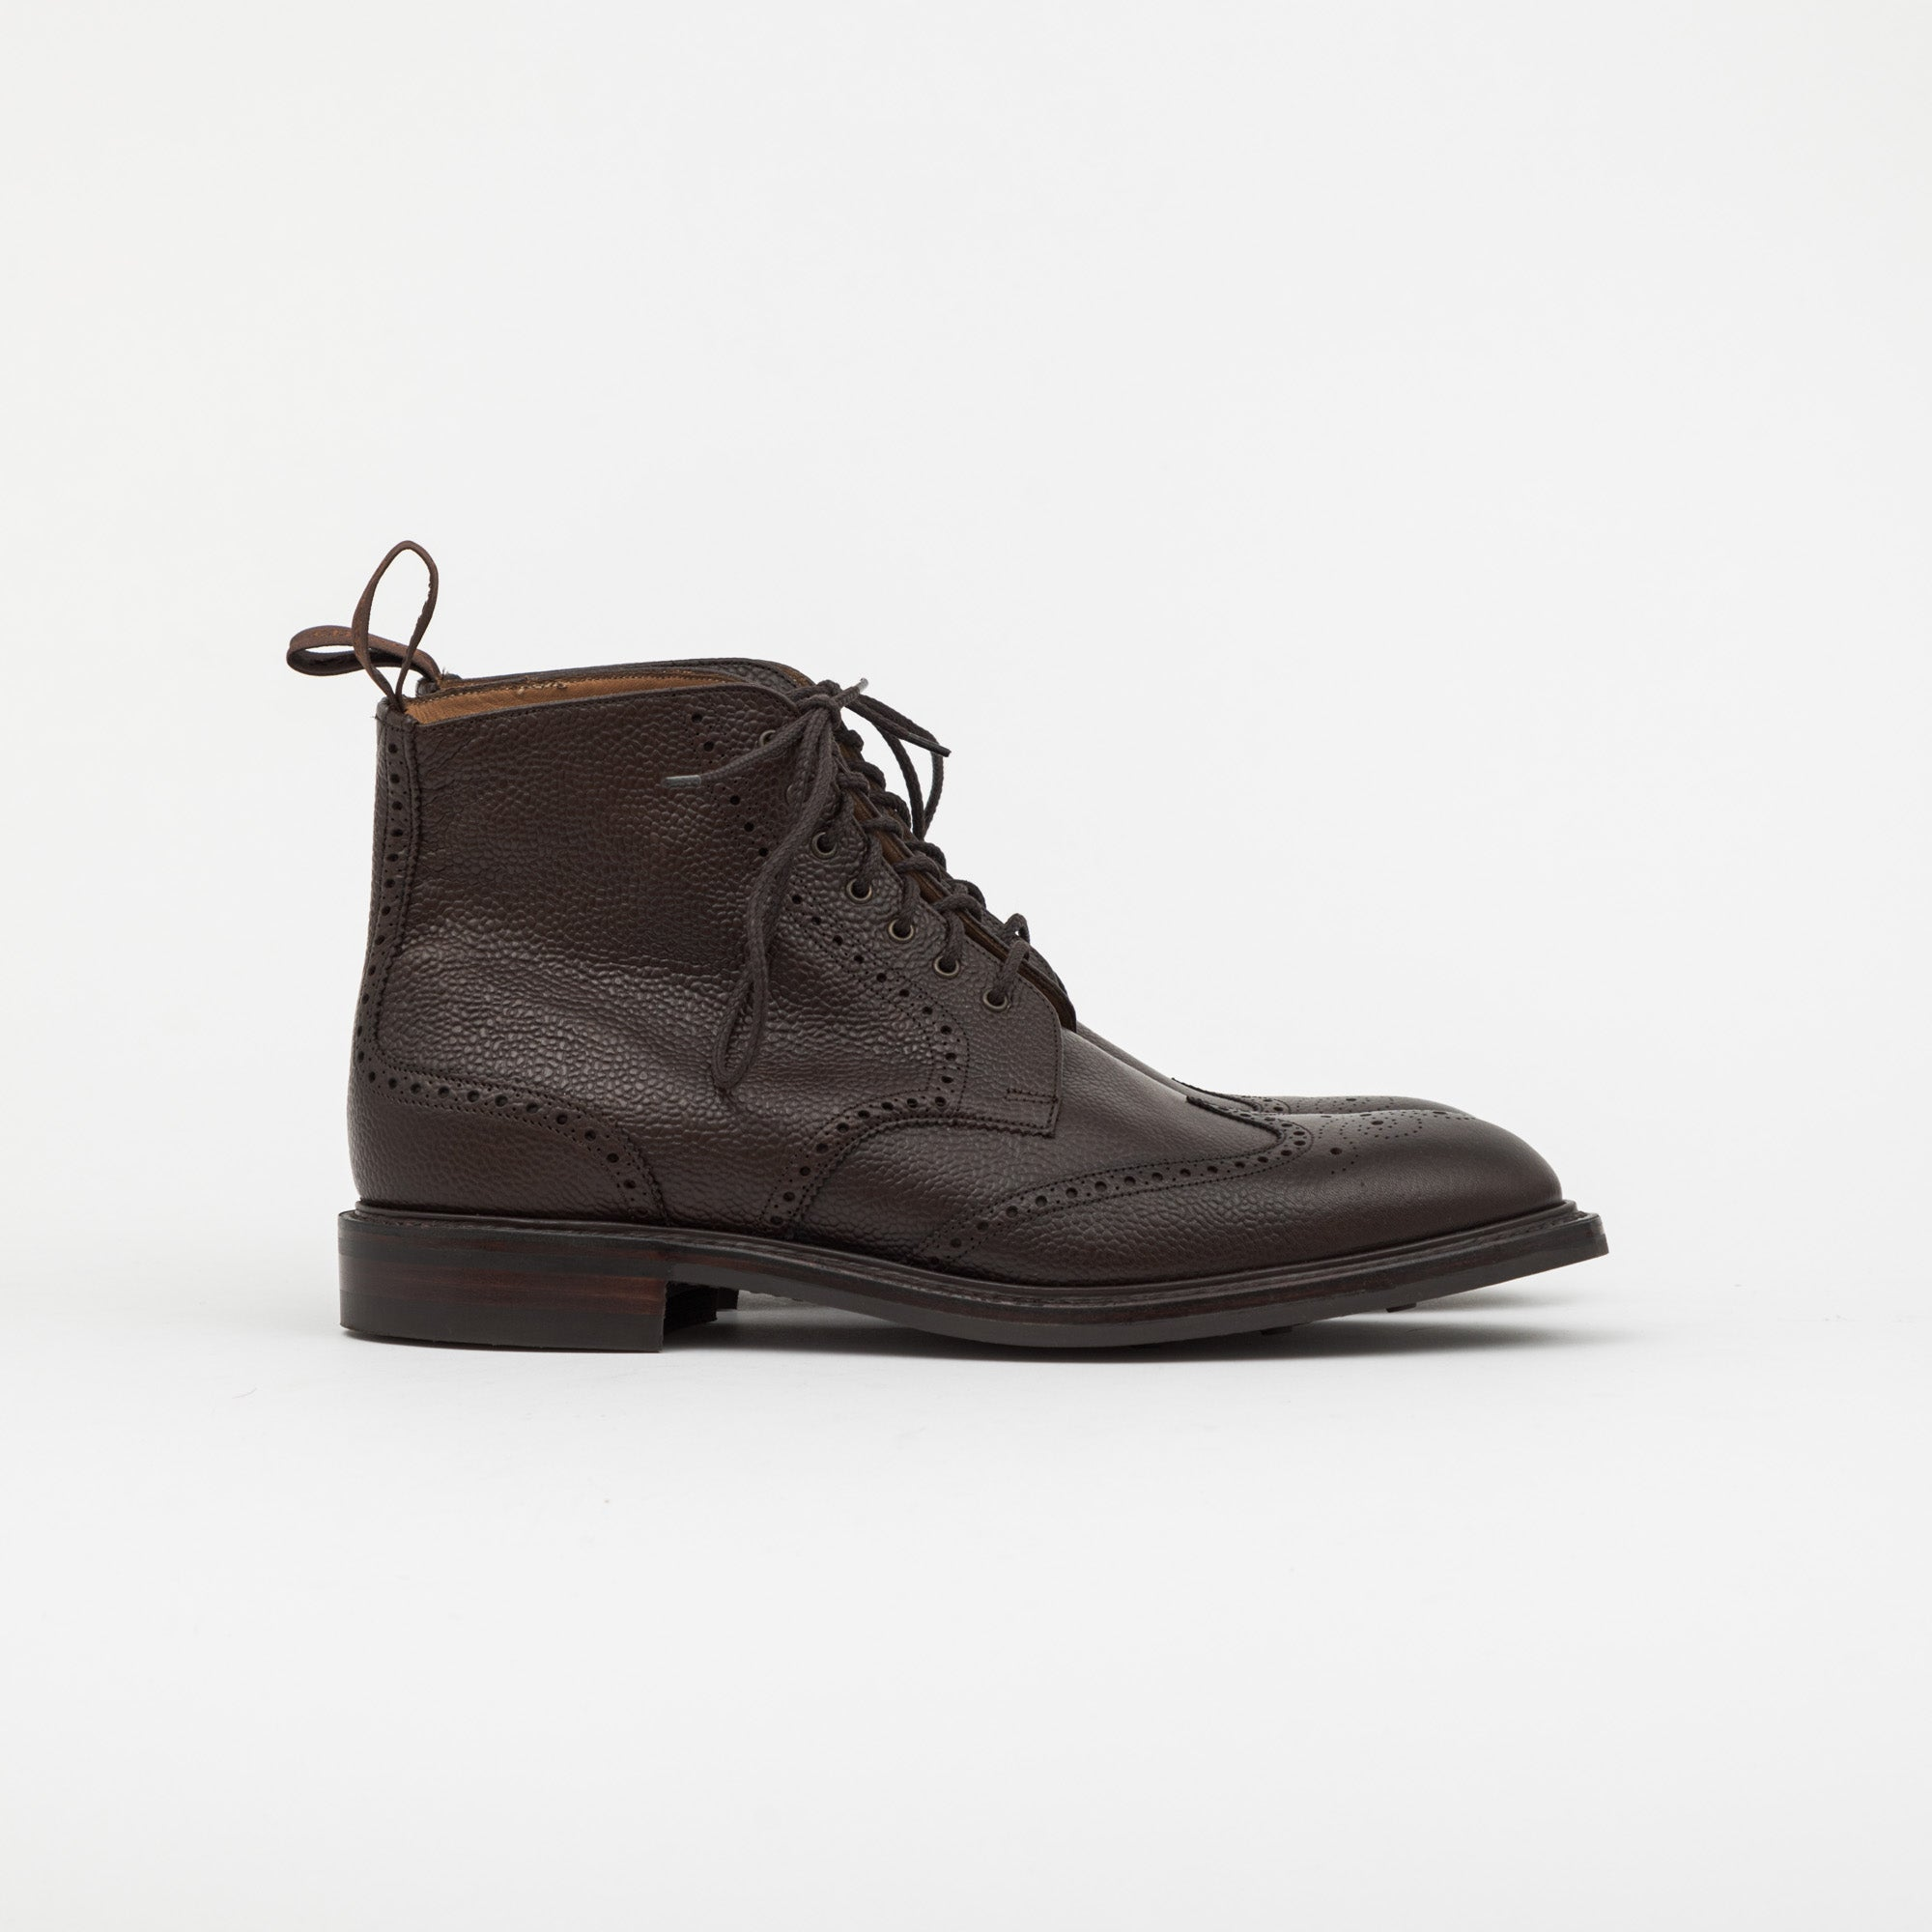 Joseph Cheaney & Sons Langton Grain Leather Boot